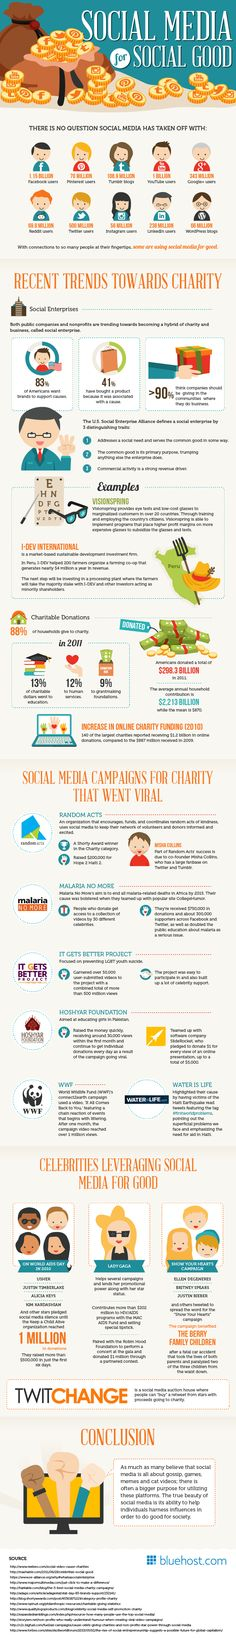 Social Media For Social Good, including those trends that went viral.